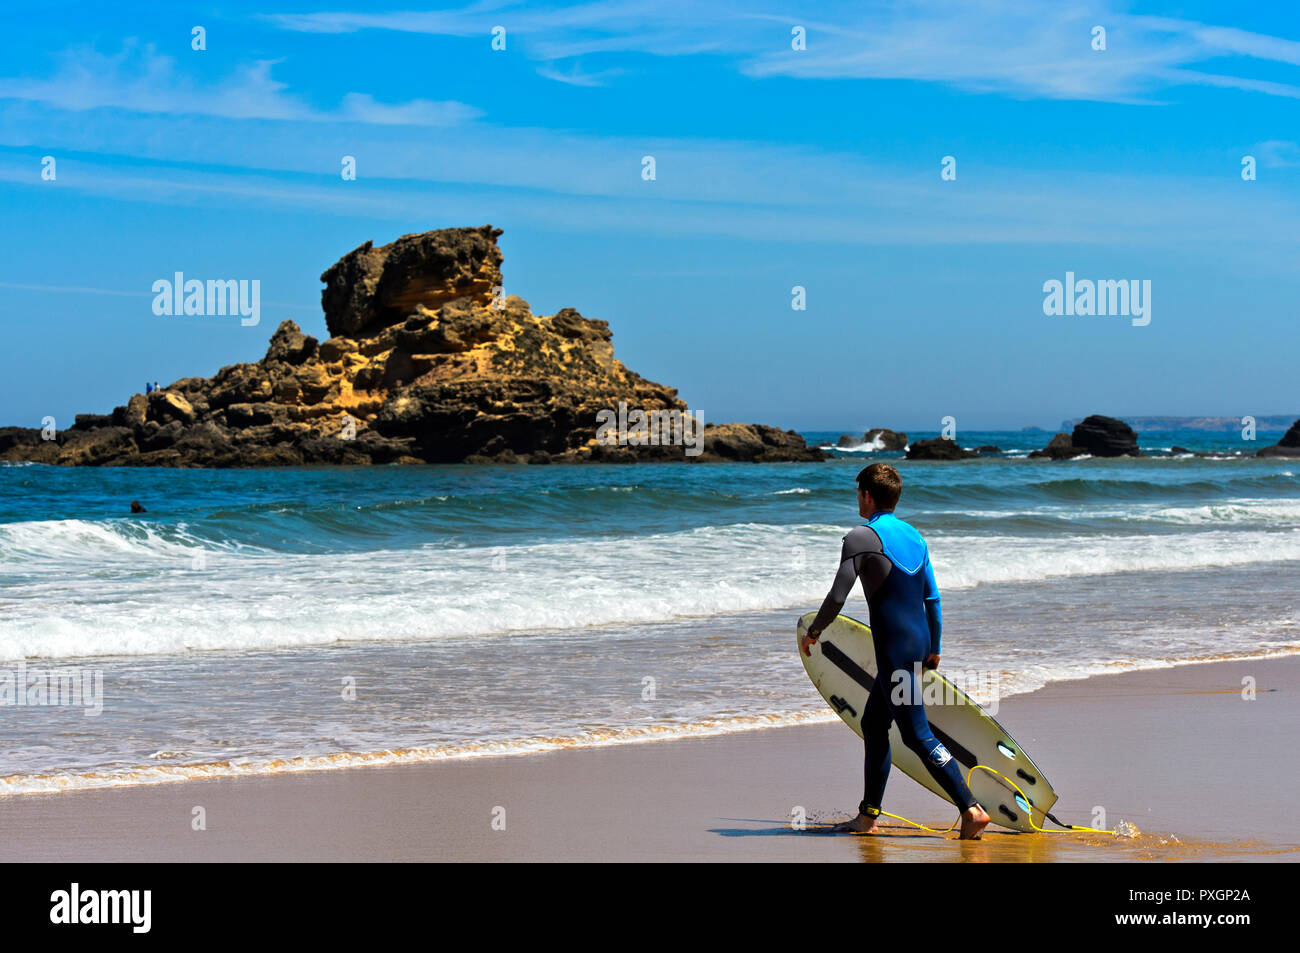 Surfer at the Praia do Castelejo beach at the Costa Vicentina coast, Vila do Bispo, Portugal Stock Photo